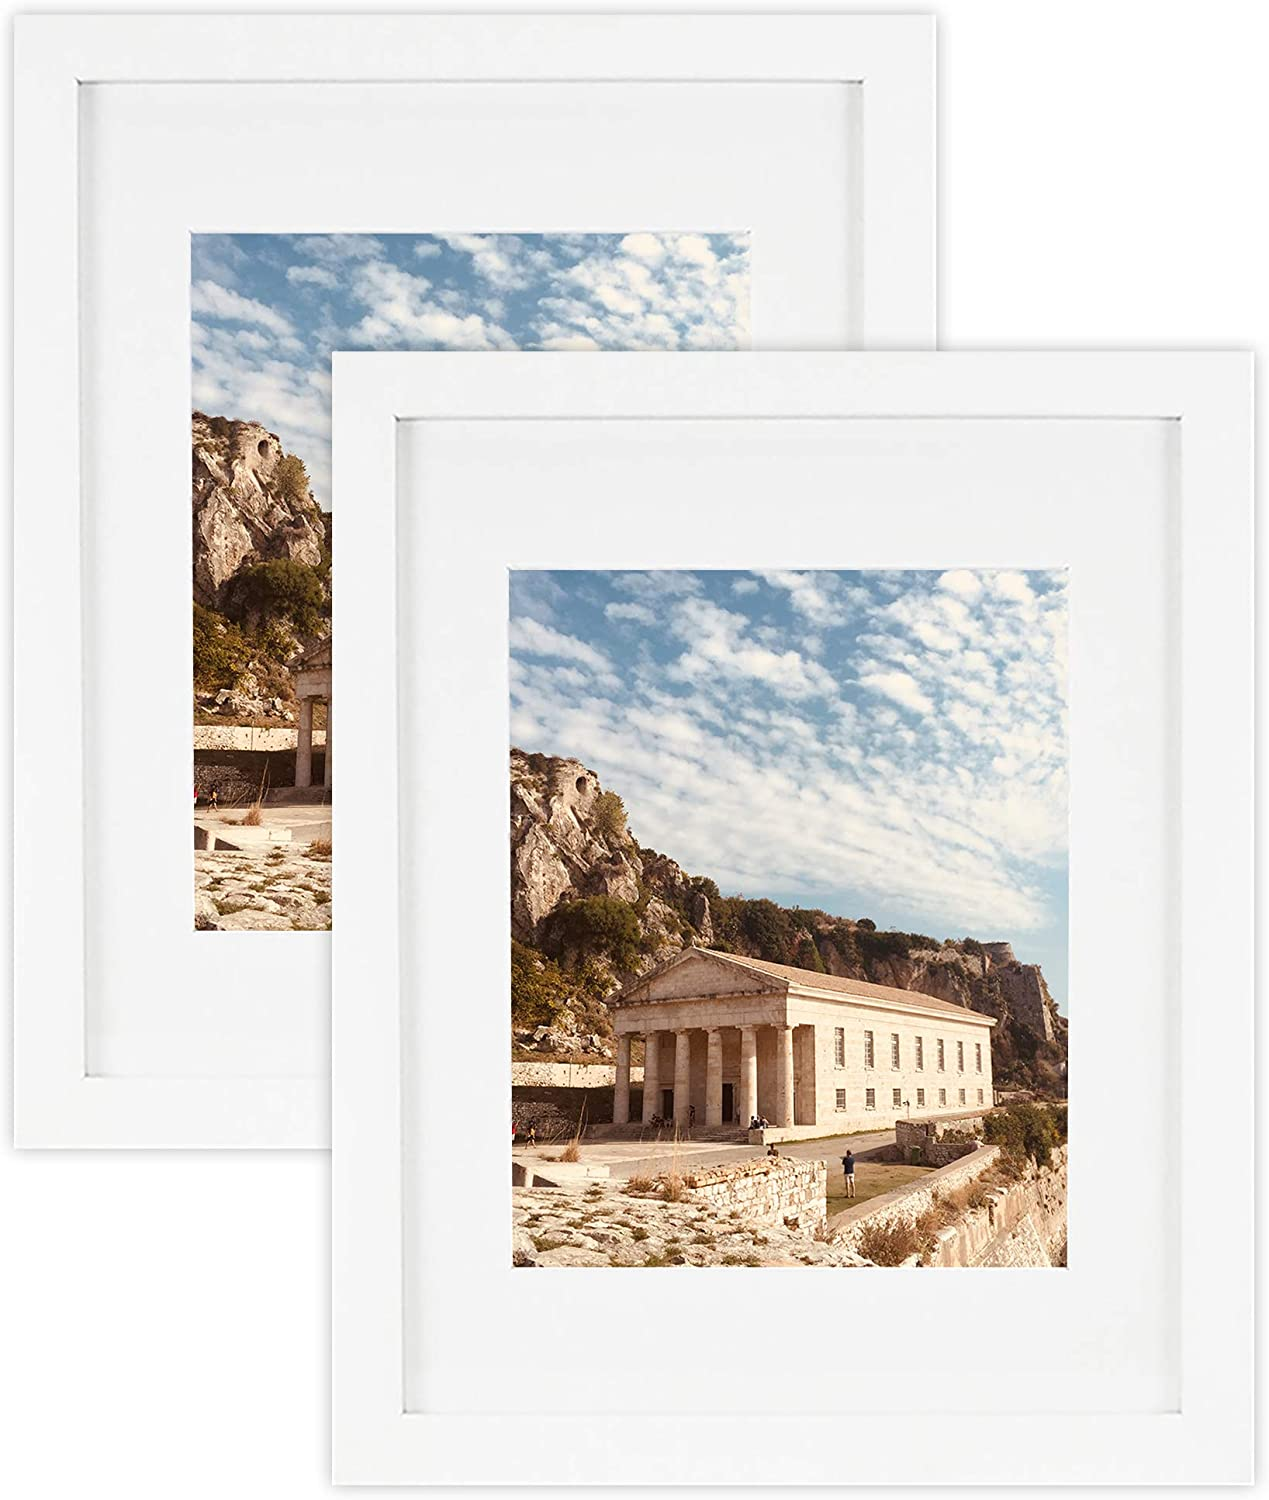 Golden State Art, Set of 2, 11x14 White Wood Photo Frame with White mat for 8x10 Pictures, Real Glass